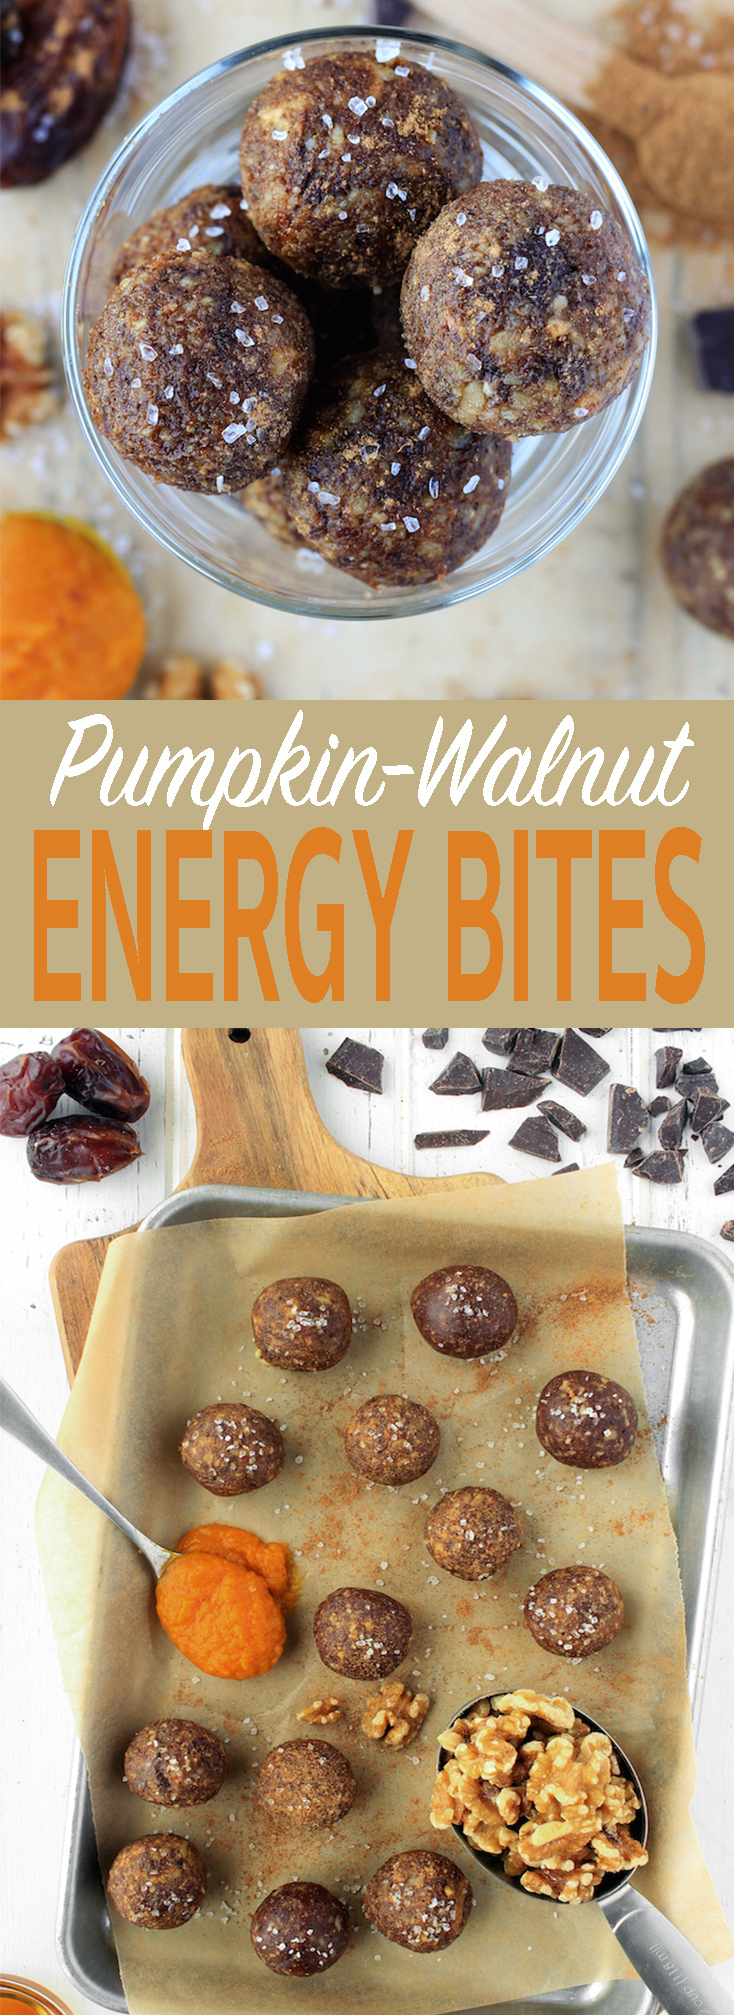 Easy no-bake, 6-ingredient pumpkin walnut energy bites made with real food ingredients like walnuts, dates and pumpkin. #freezable #makeahead #vegan #glutenfree